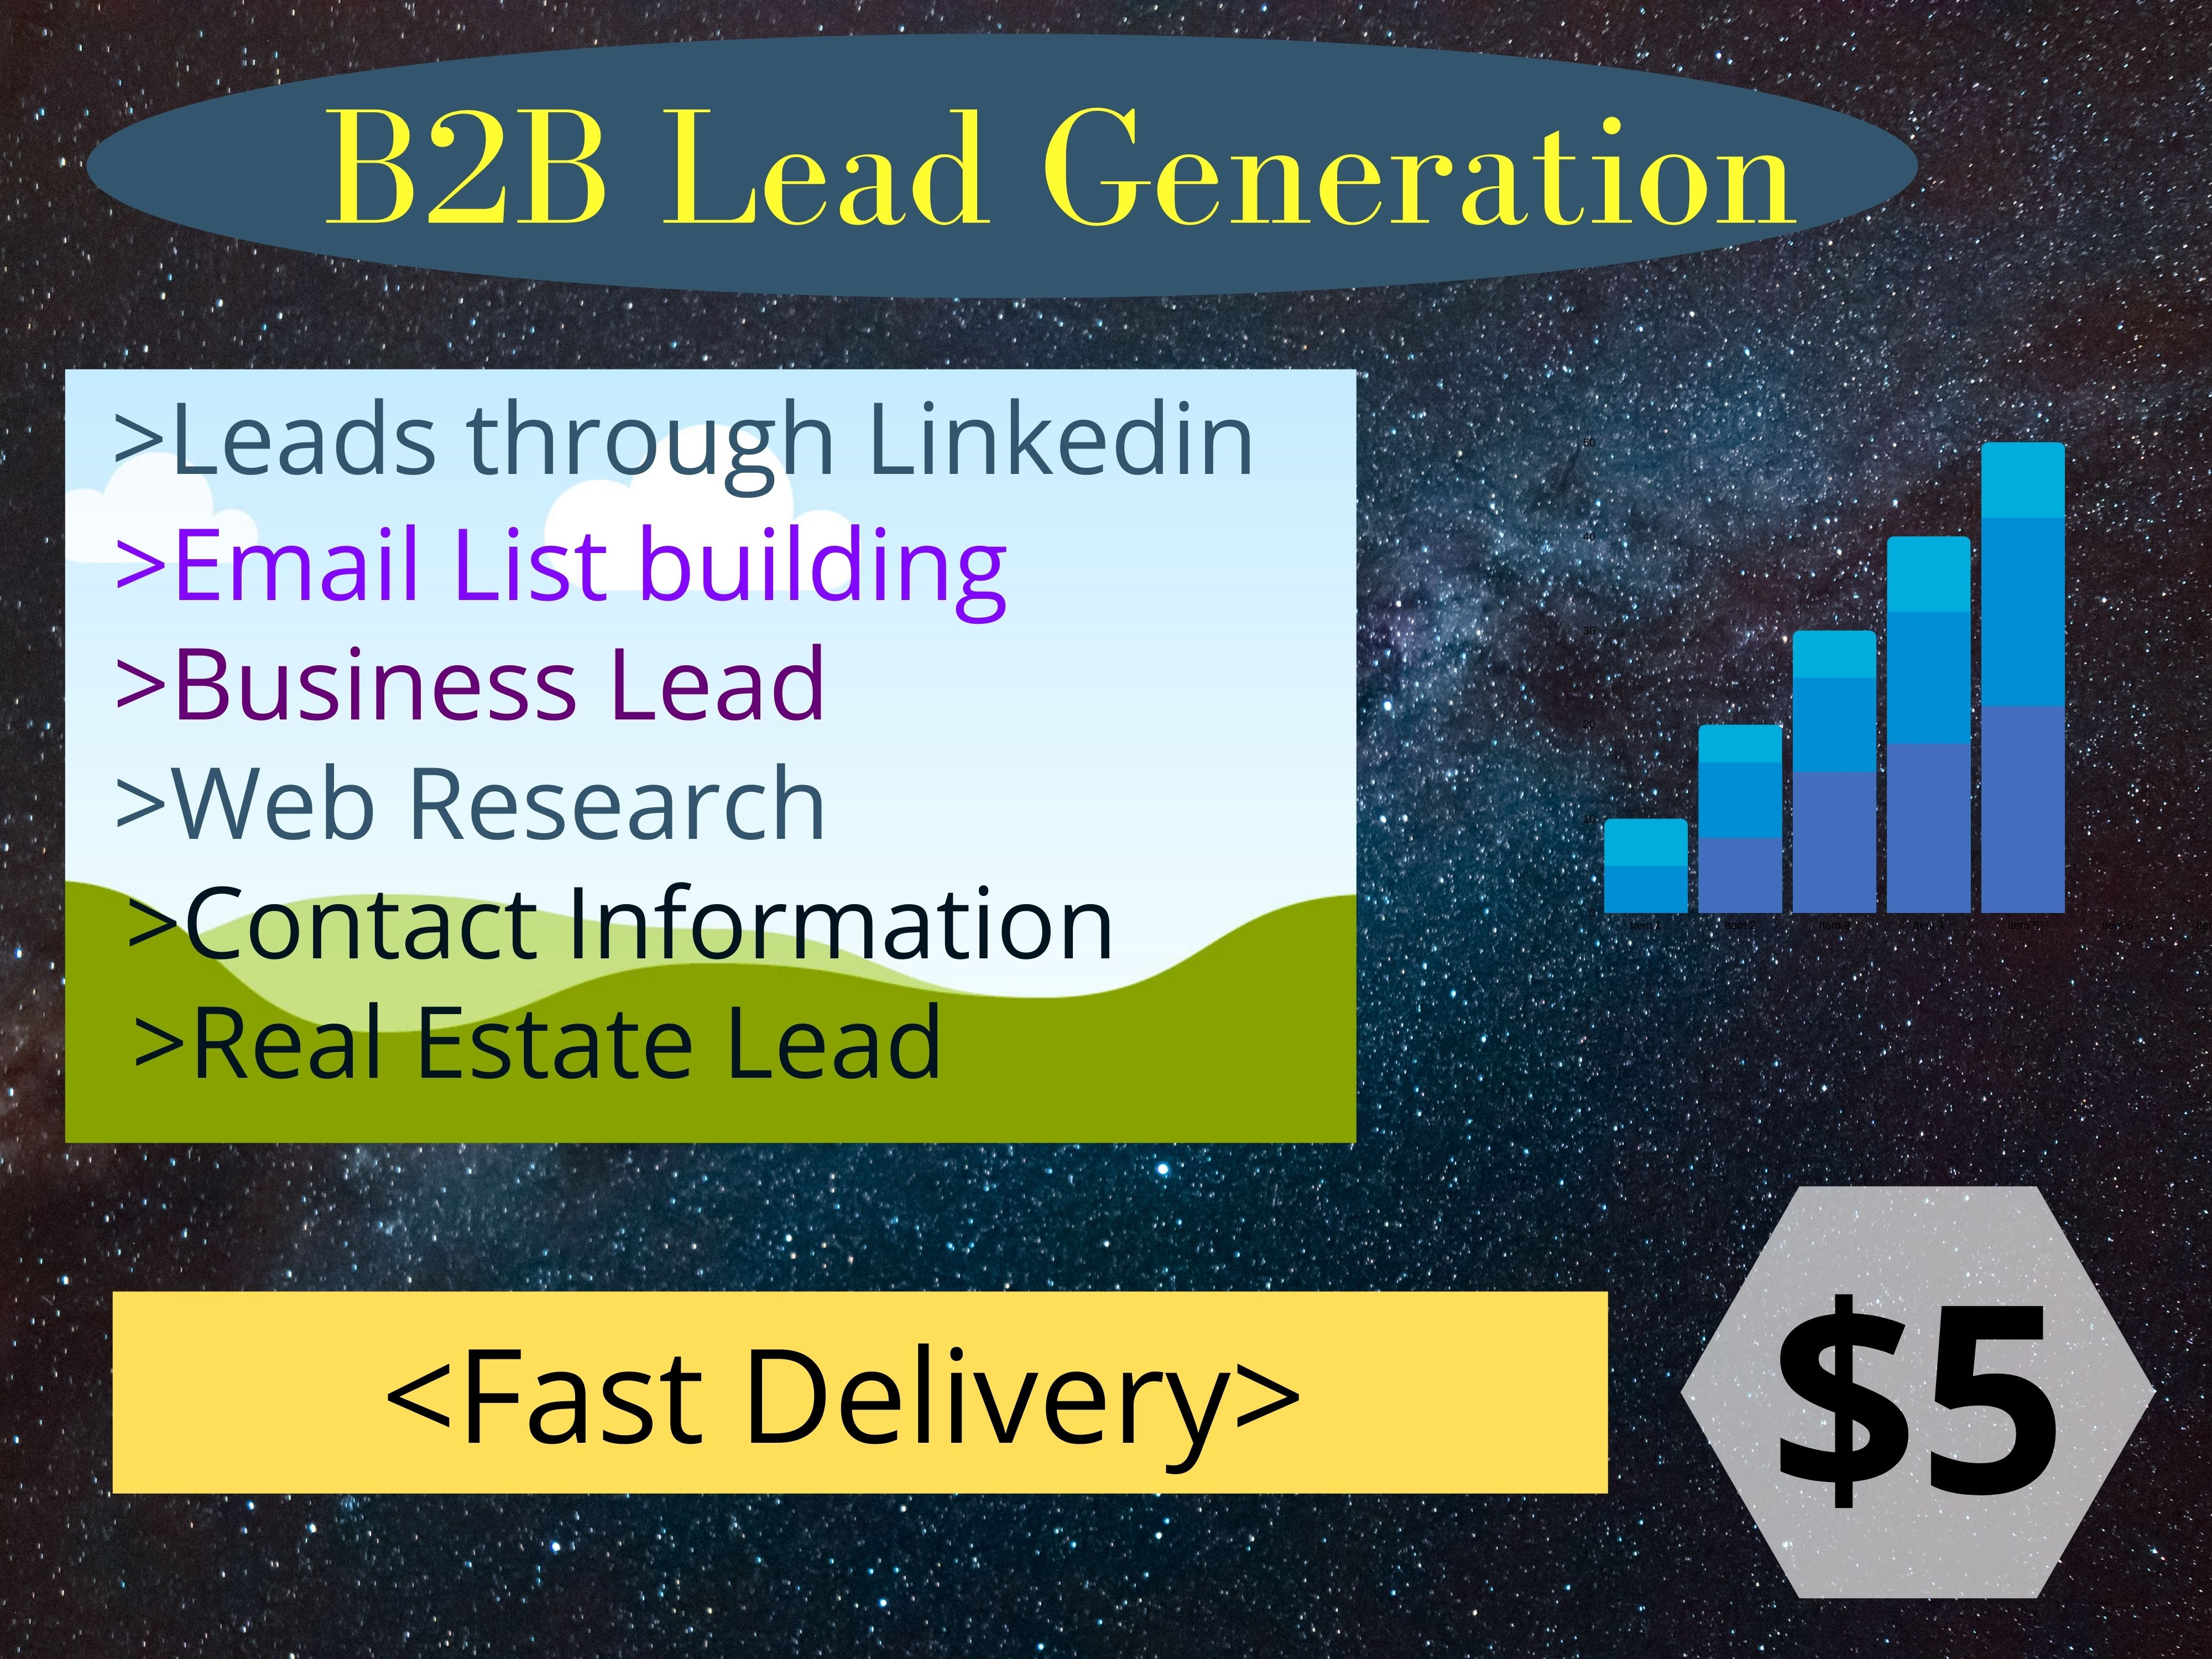 I will do B2B Lead Generation and Web Research to give you solid leads.